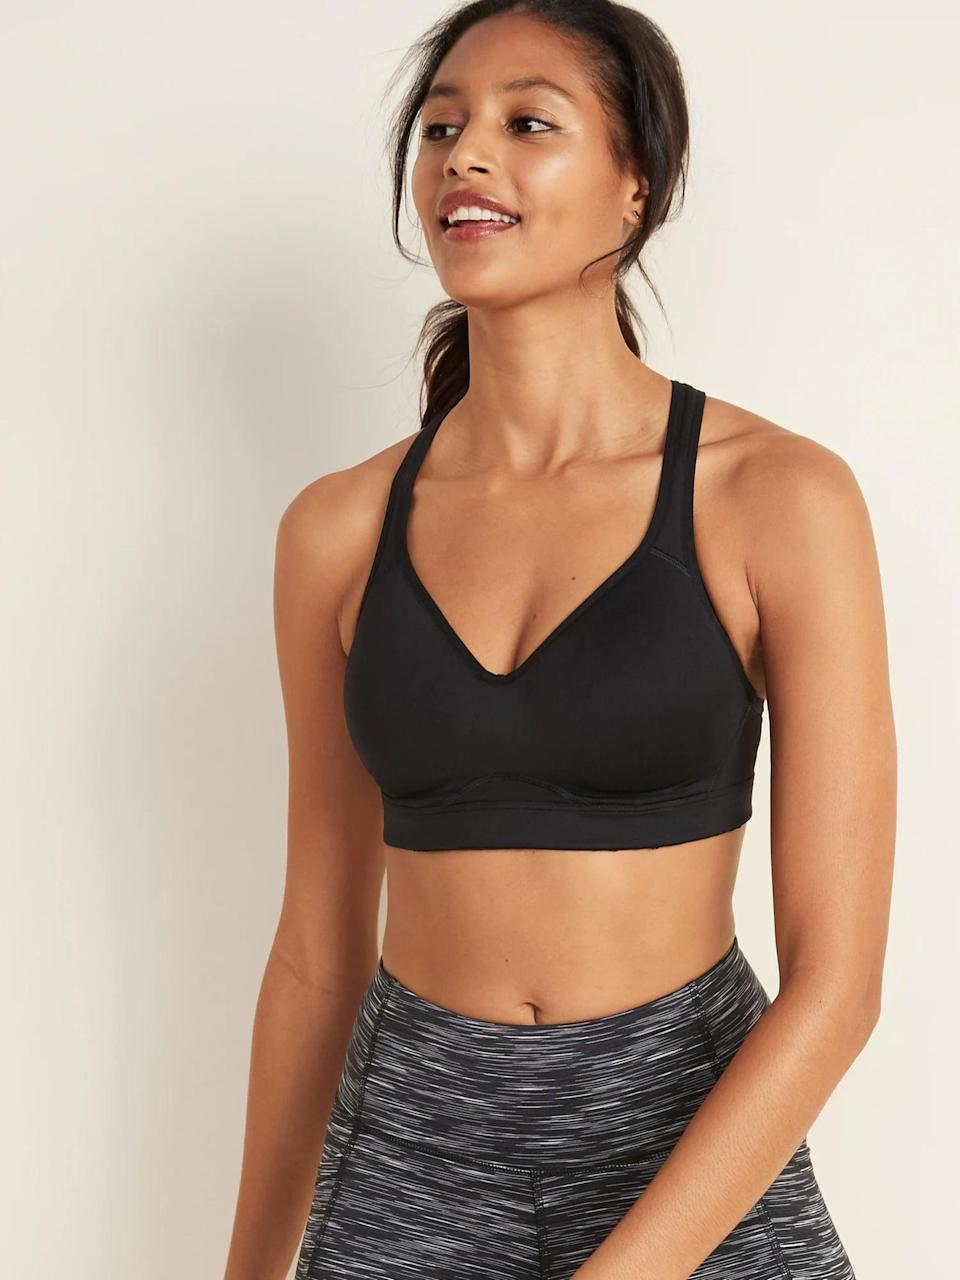 <p>If you're looking for something with extra support for those boot-camp videos, you can't go wrong with this popular <span>Old Navy High-Support Racerback Sports Bra</span> ($20, originally 33). It comes in four neutral colors including a tan shade, a soft light pink, shade, gray and black.</p>